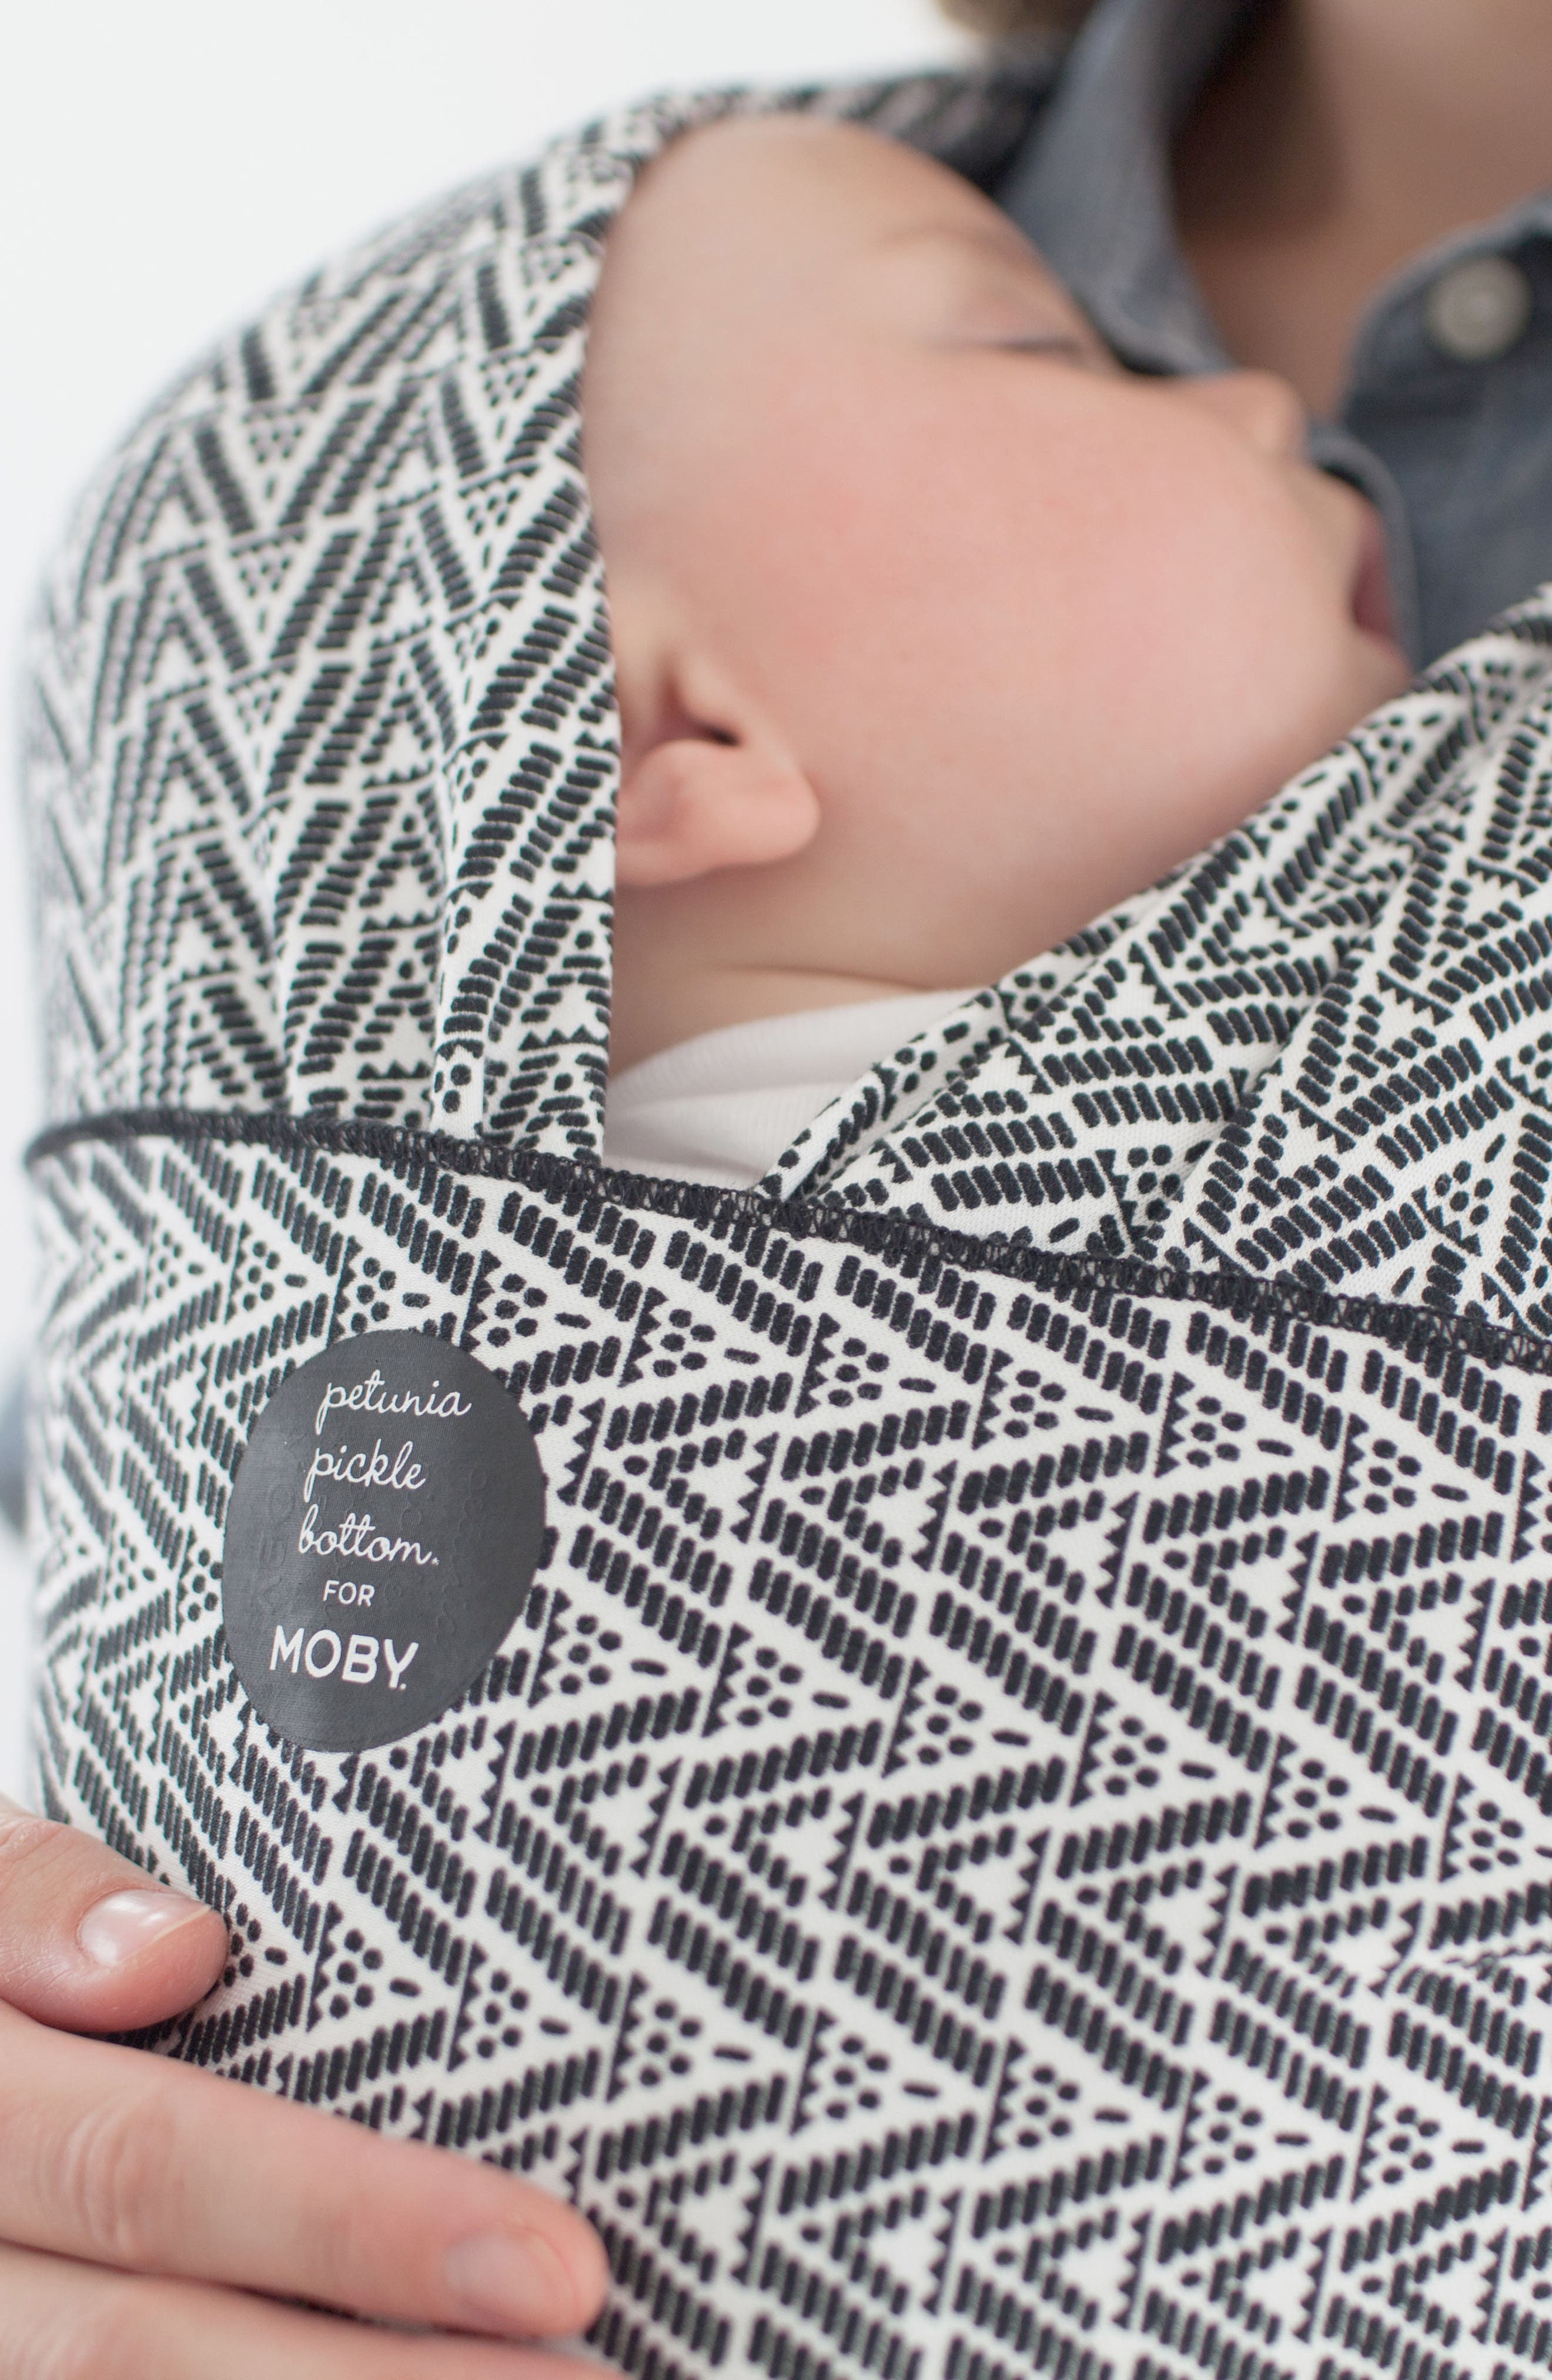 Wrap x Petunia Pickle Bottom Baby Carrier,                             Main thumbnail 1, color,                             BLACK/ WHITE